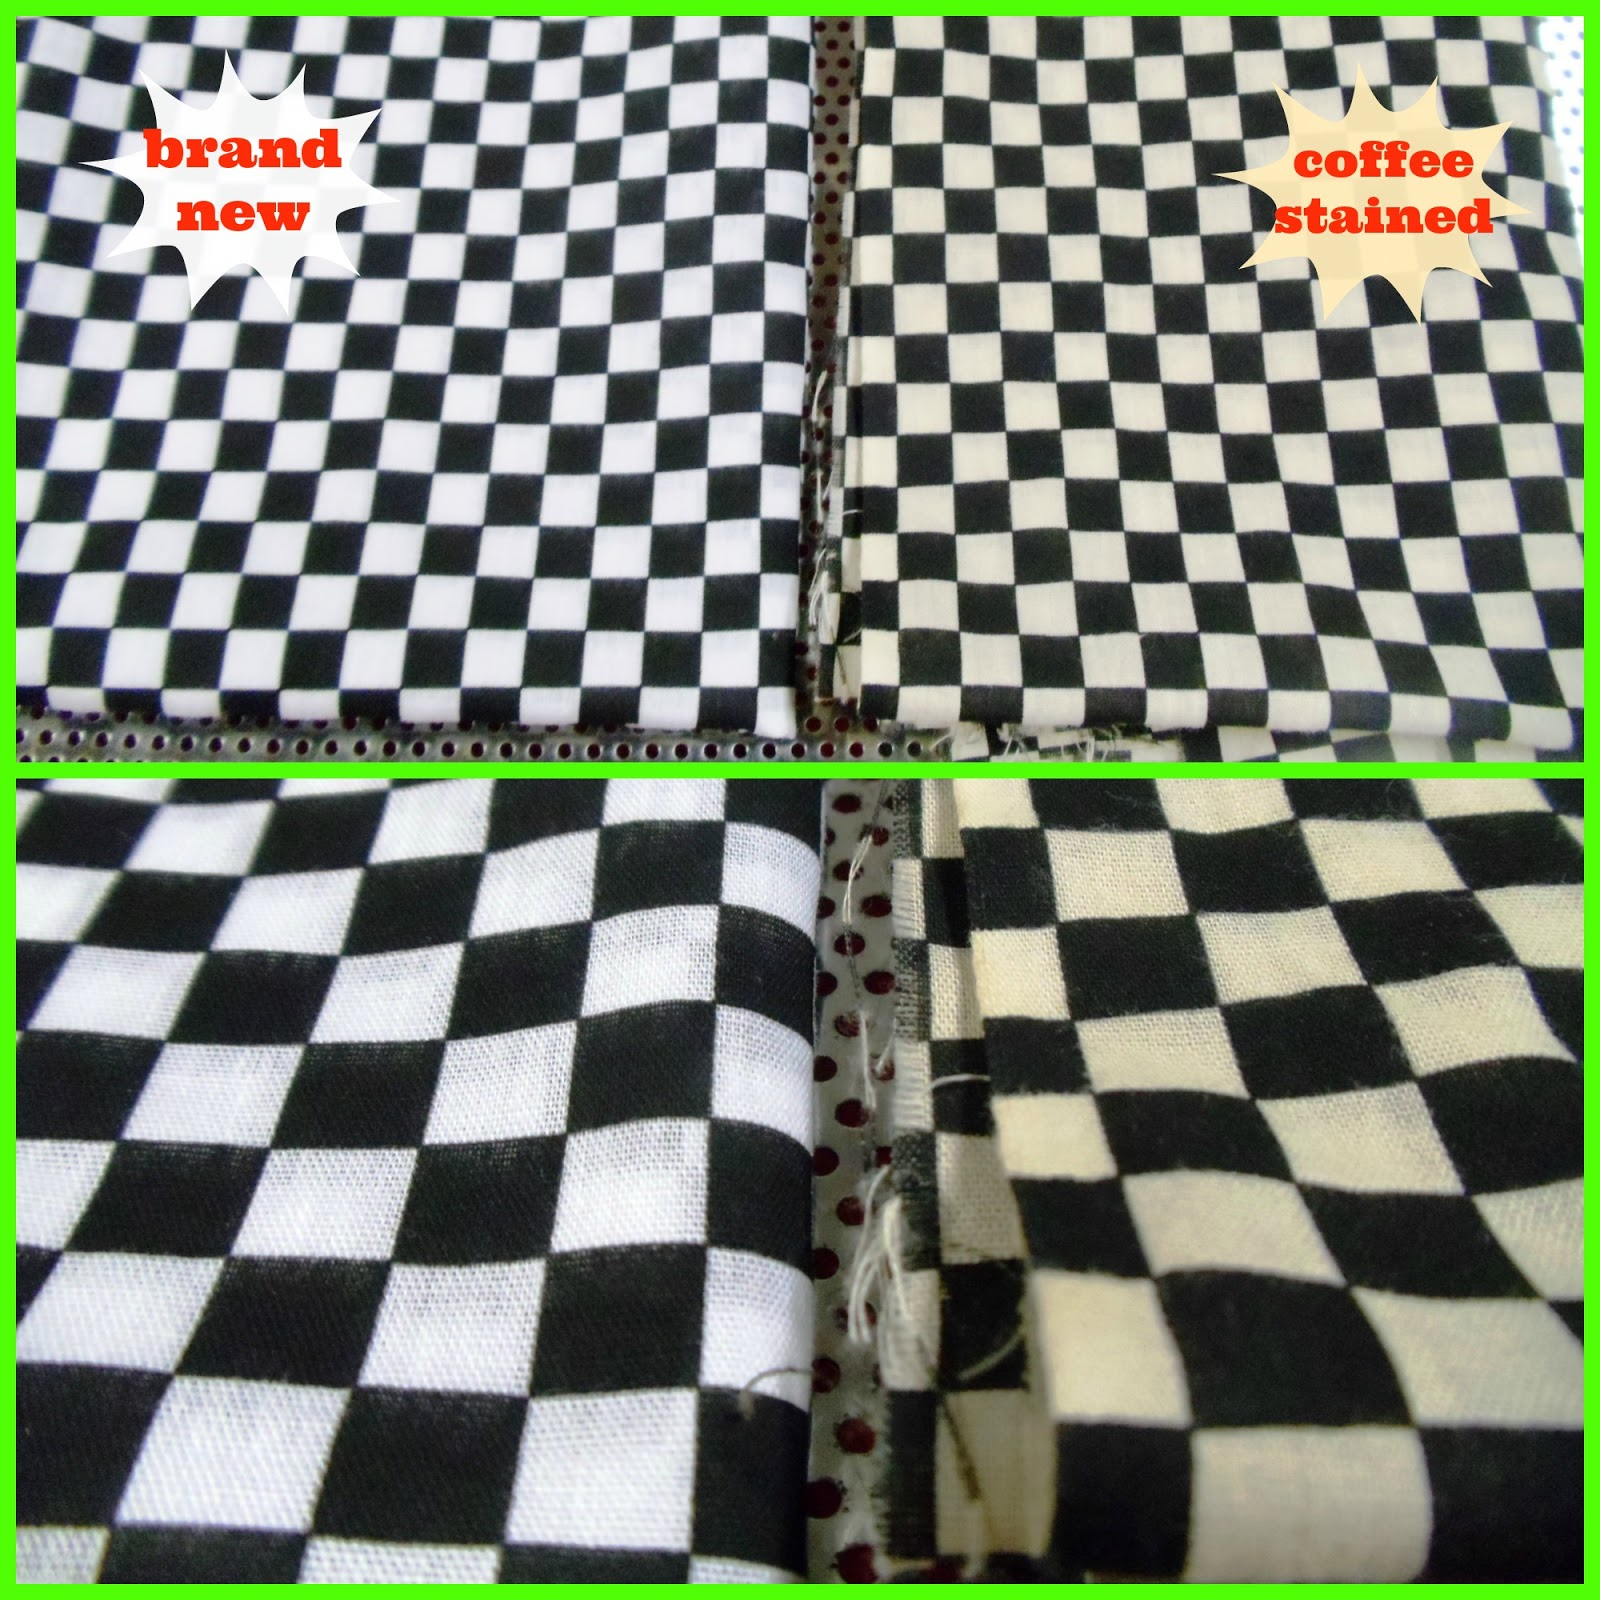 Aged pillows coffee staining checkered flag checkered flag pillows